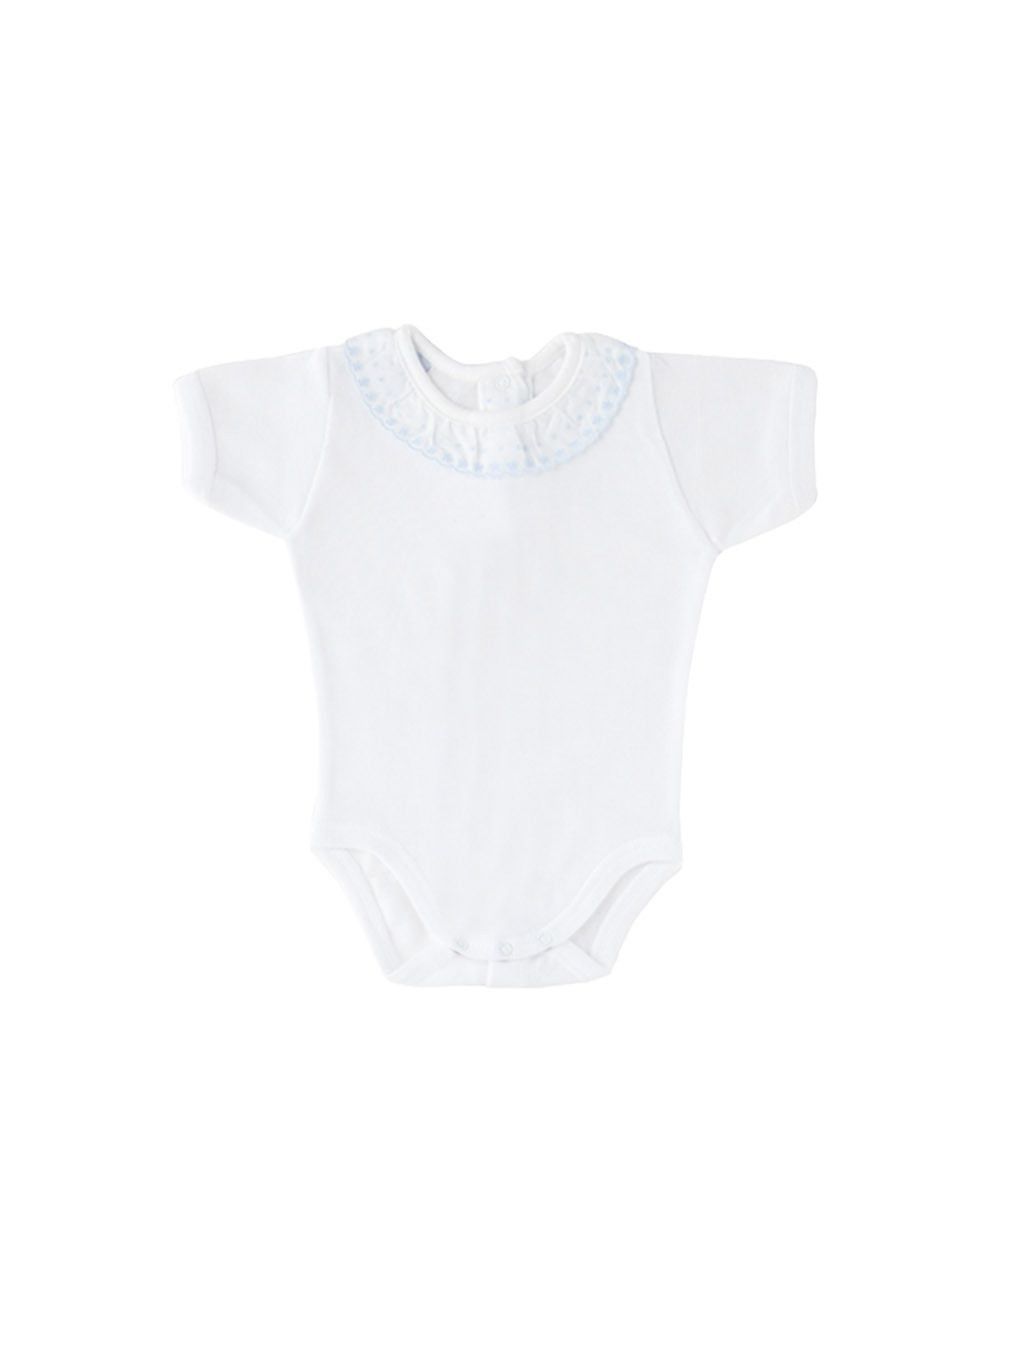 Baby Cotton Bodysuit with Blue Lace Embroidery Collar